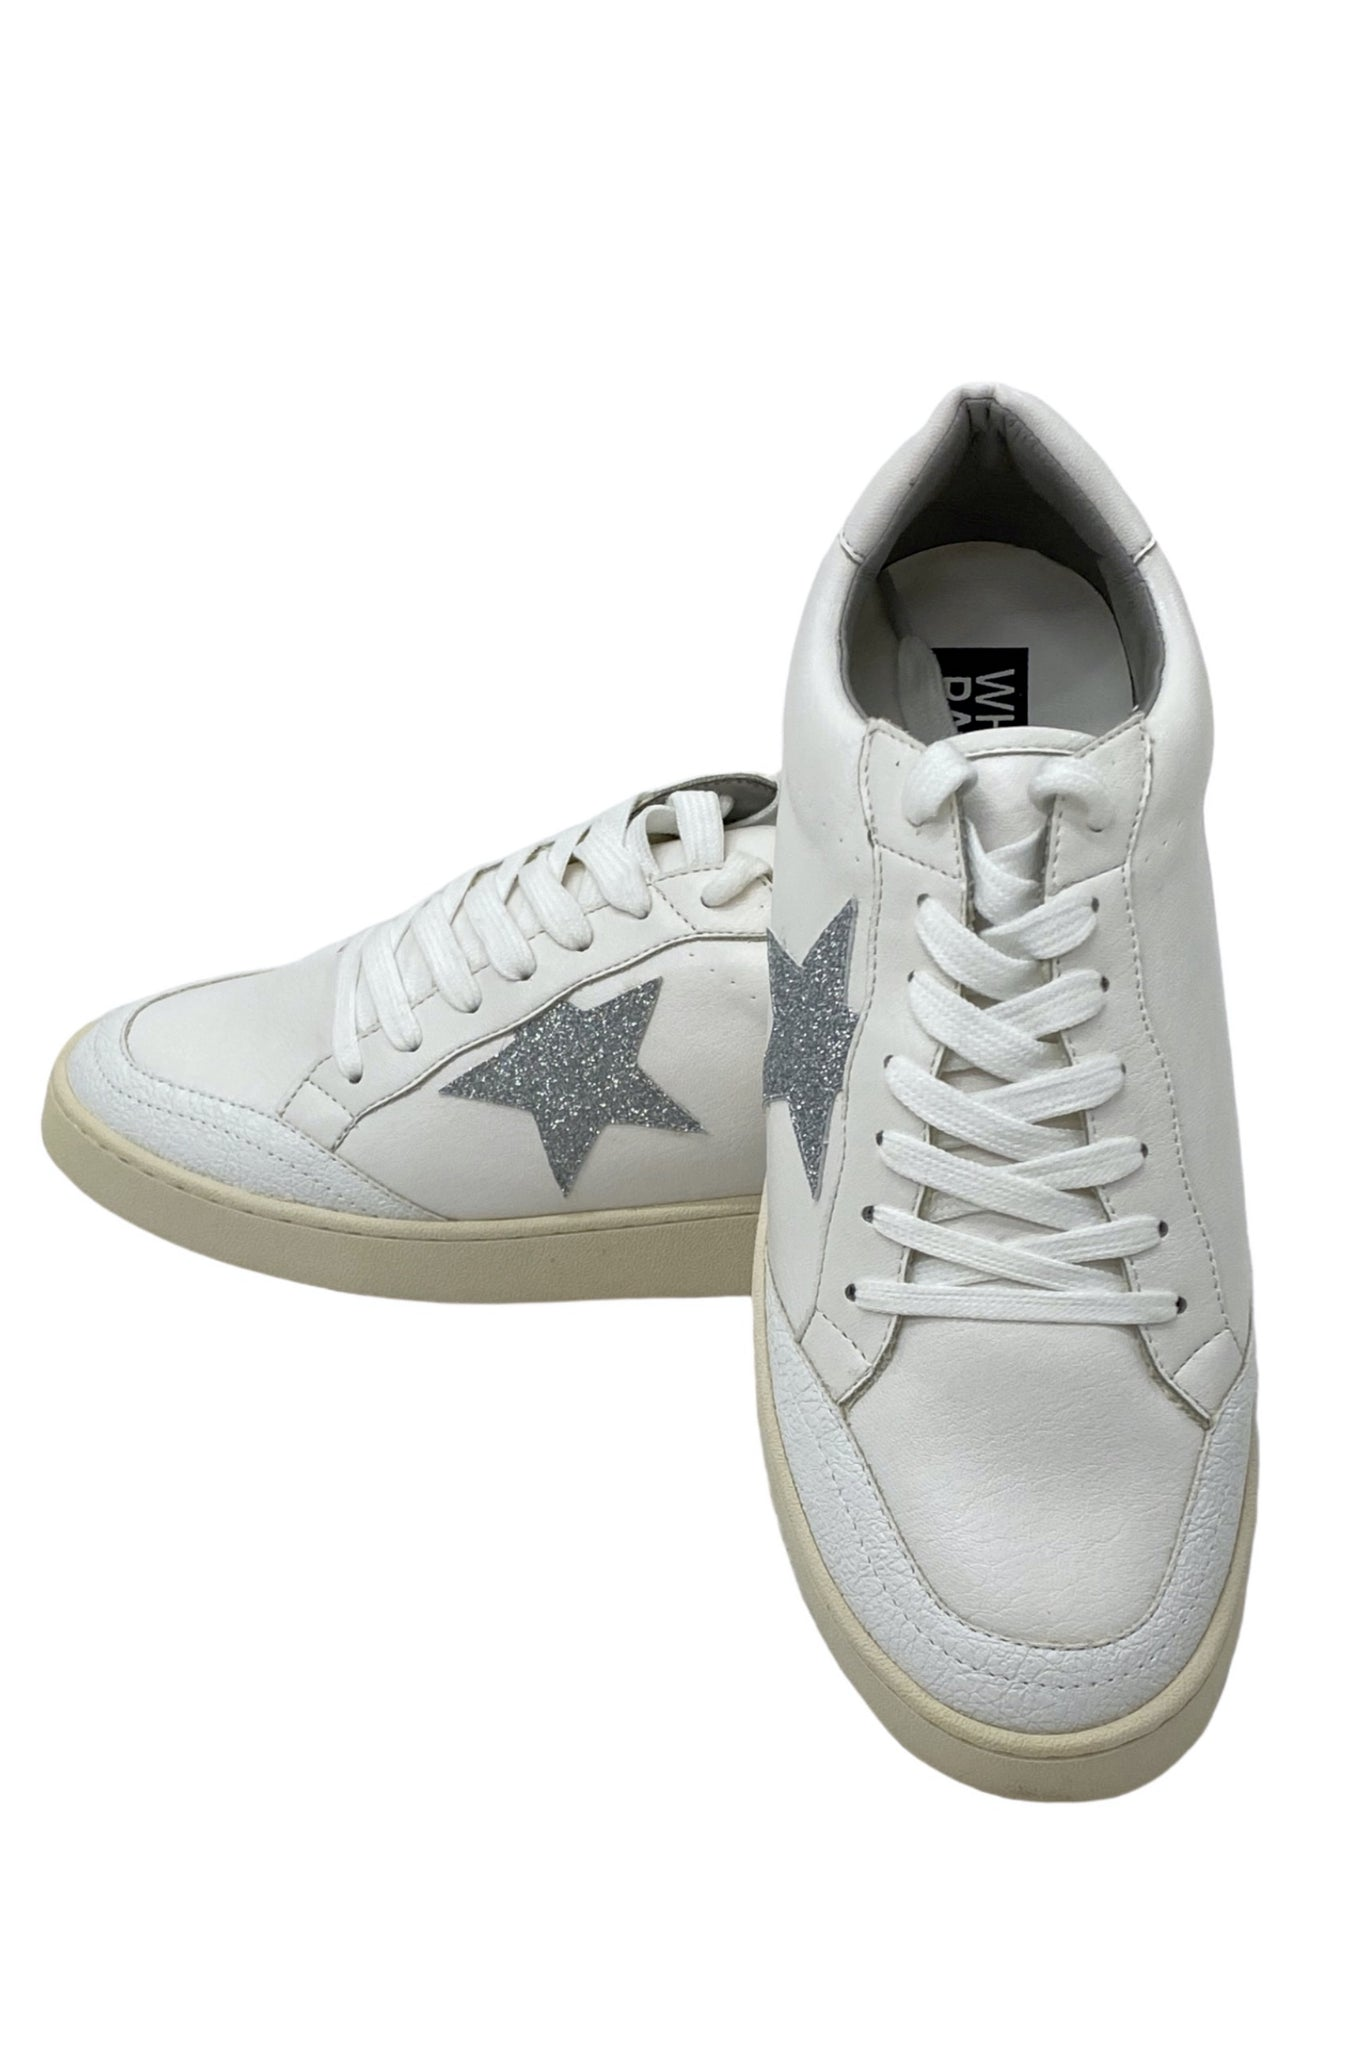 White Platform Sneakers w/ Star